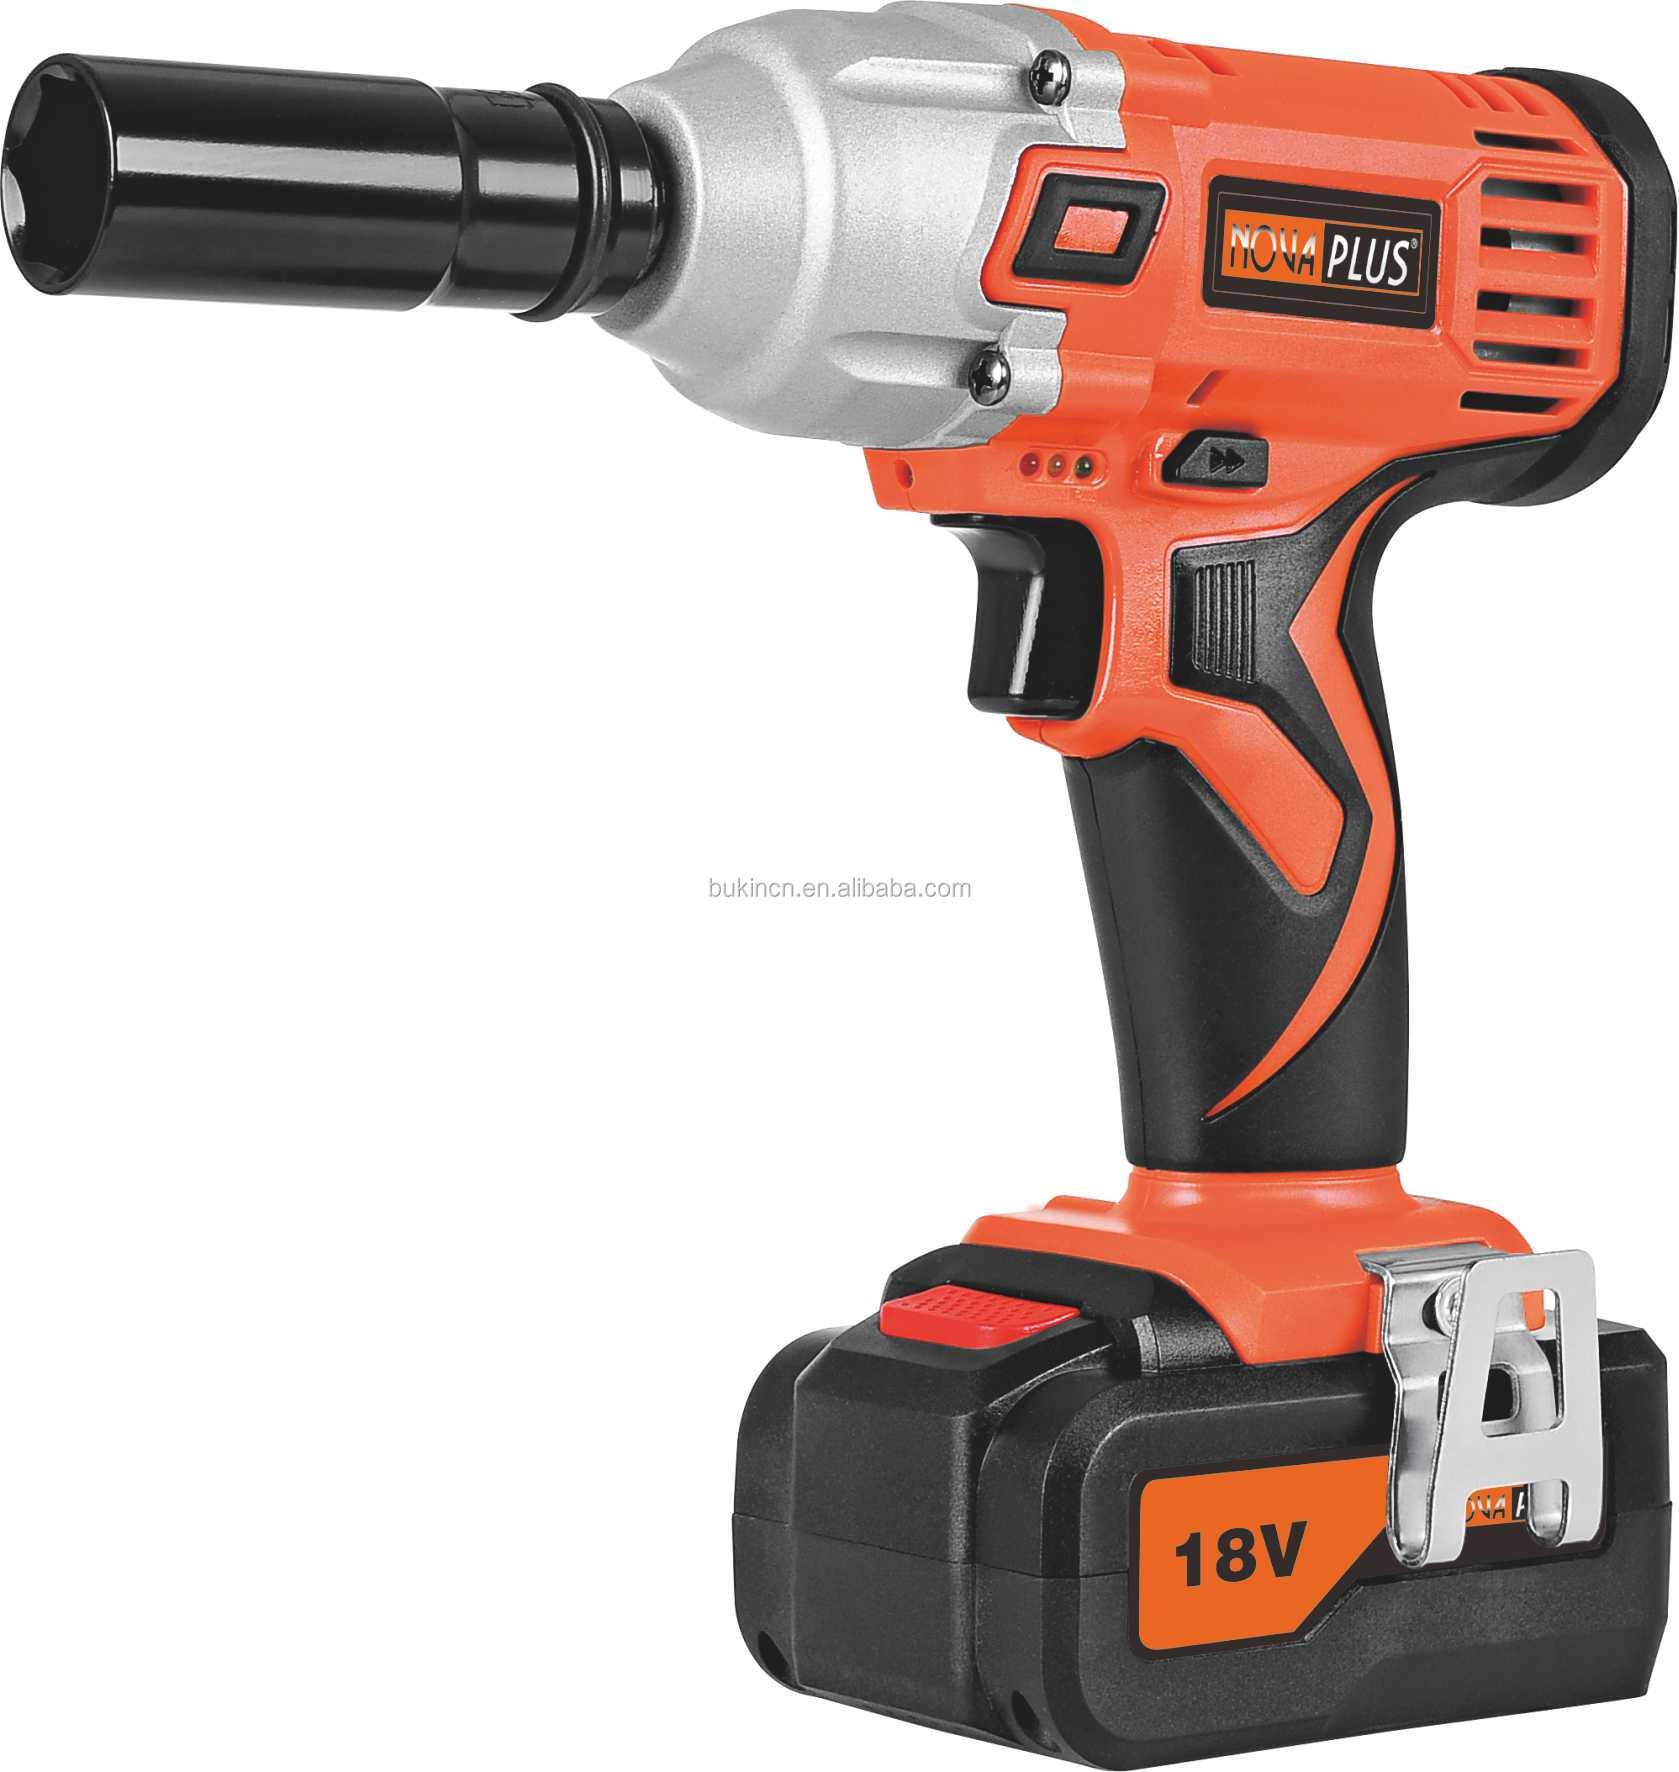 Cordless Electric Impact Wrench Applied To Tightening Nuts